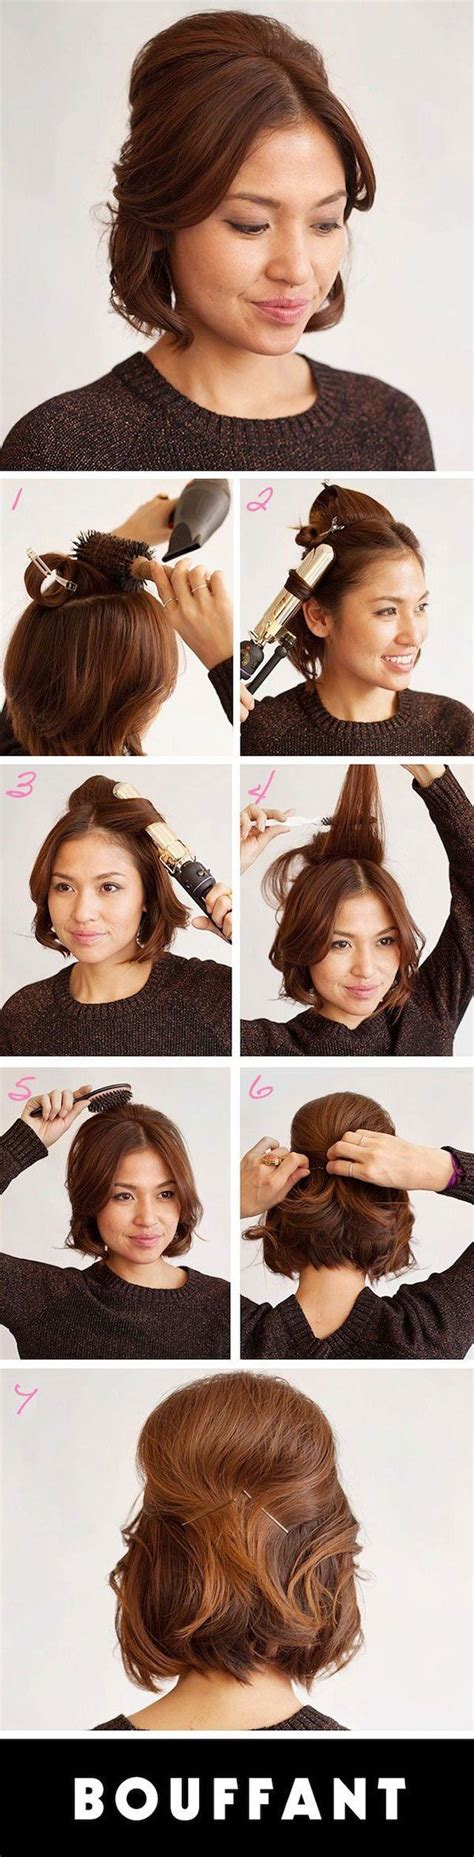 25 hairstyles with tutorials for 25 best ideas about bouffant tutorial on